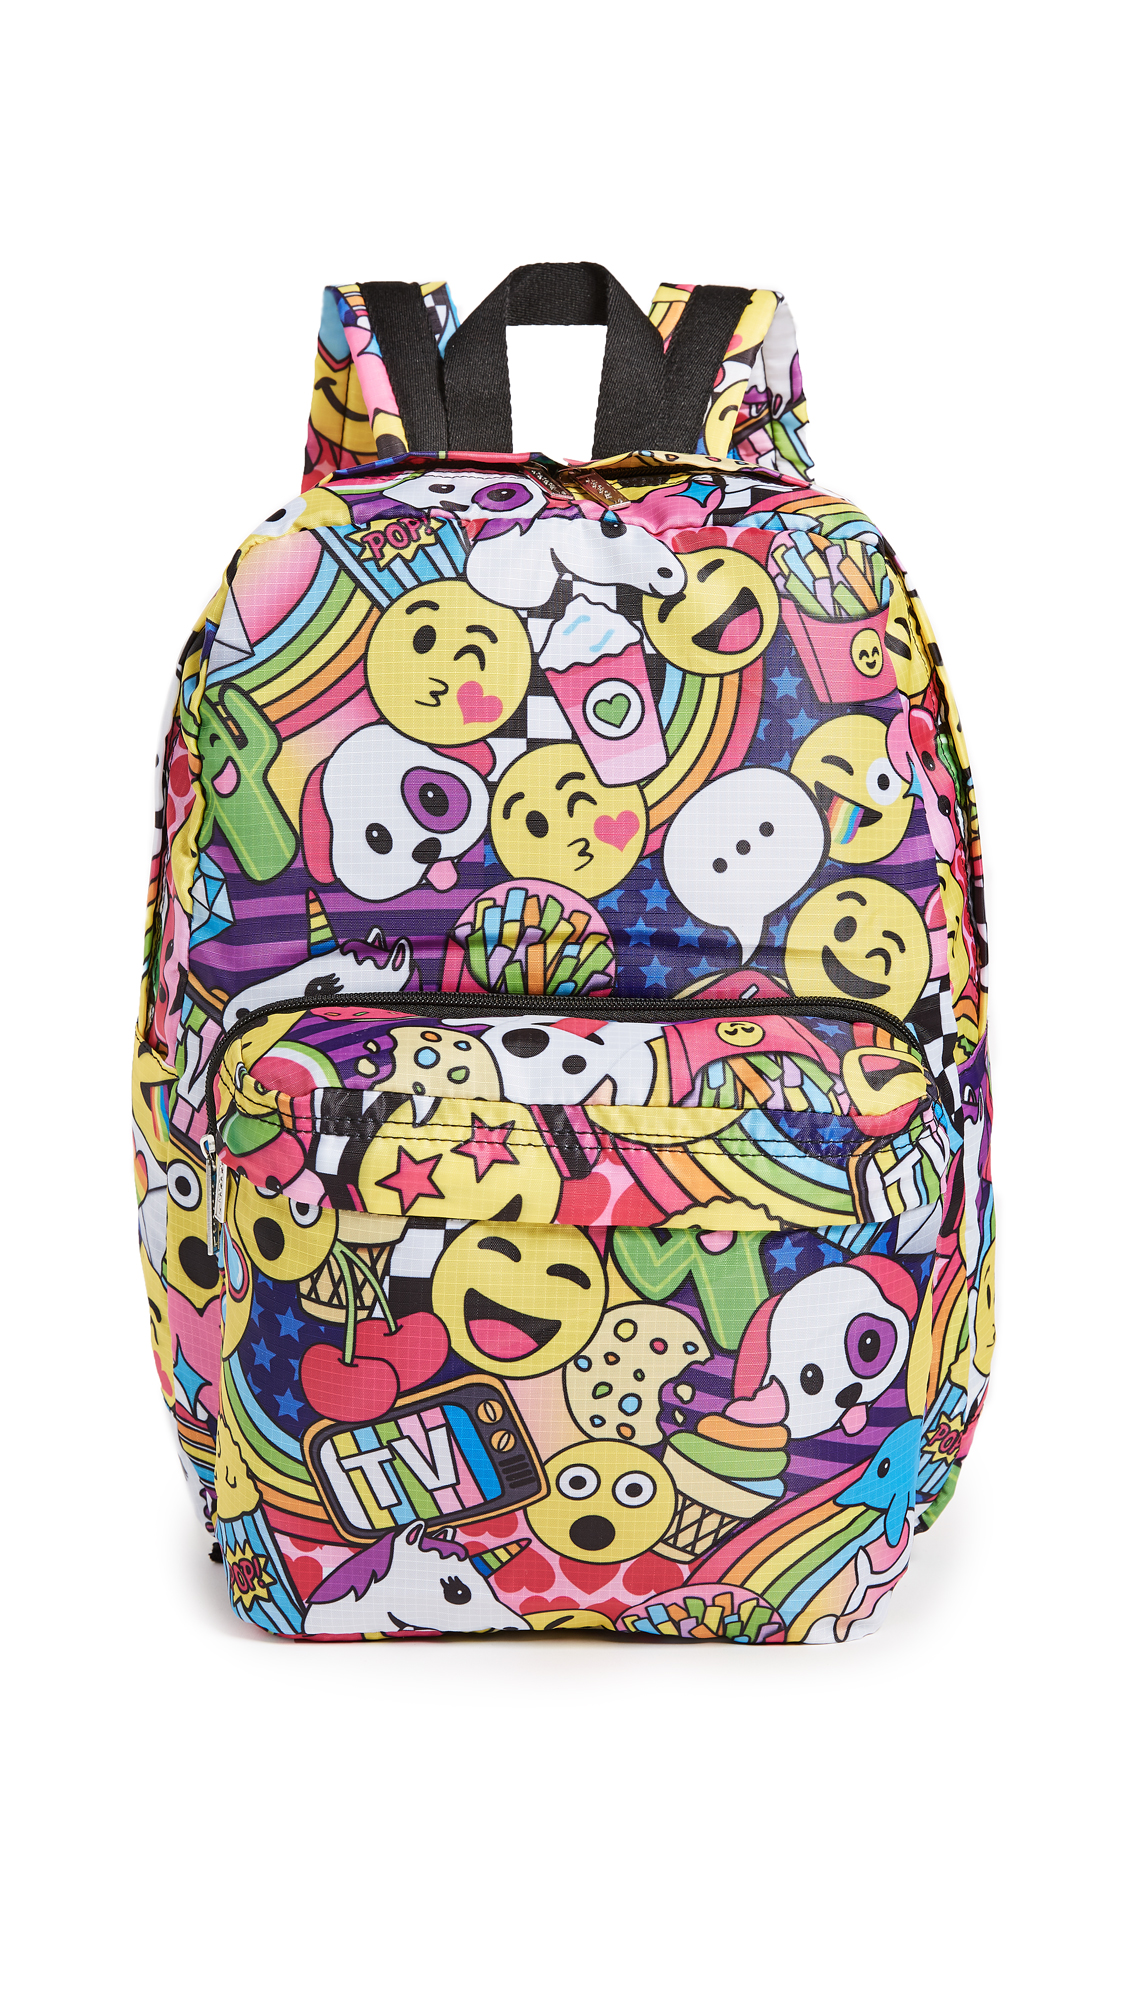 Gift Boutique Child's Emoji Party Backpack